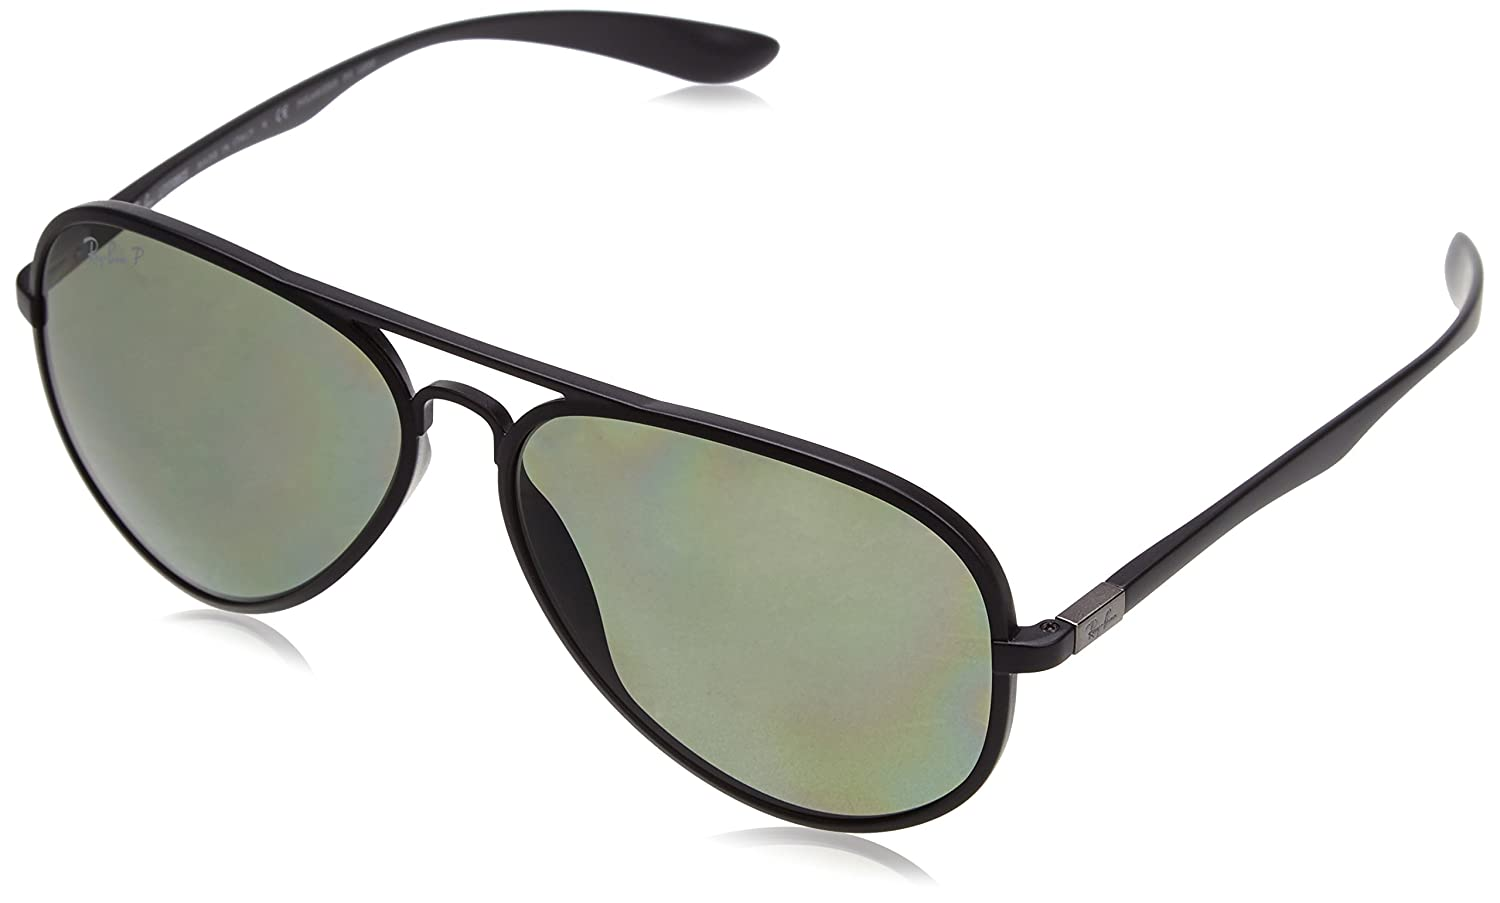 ff68913cda1 Amazon.com  Ray Ban RB4180 Liteforce Tech Sunglasses 601S 9A Matte Black  (Polarized Green Lens)  Ray-Ban  Clothing